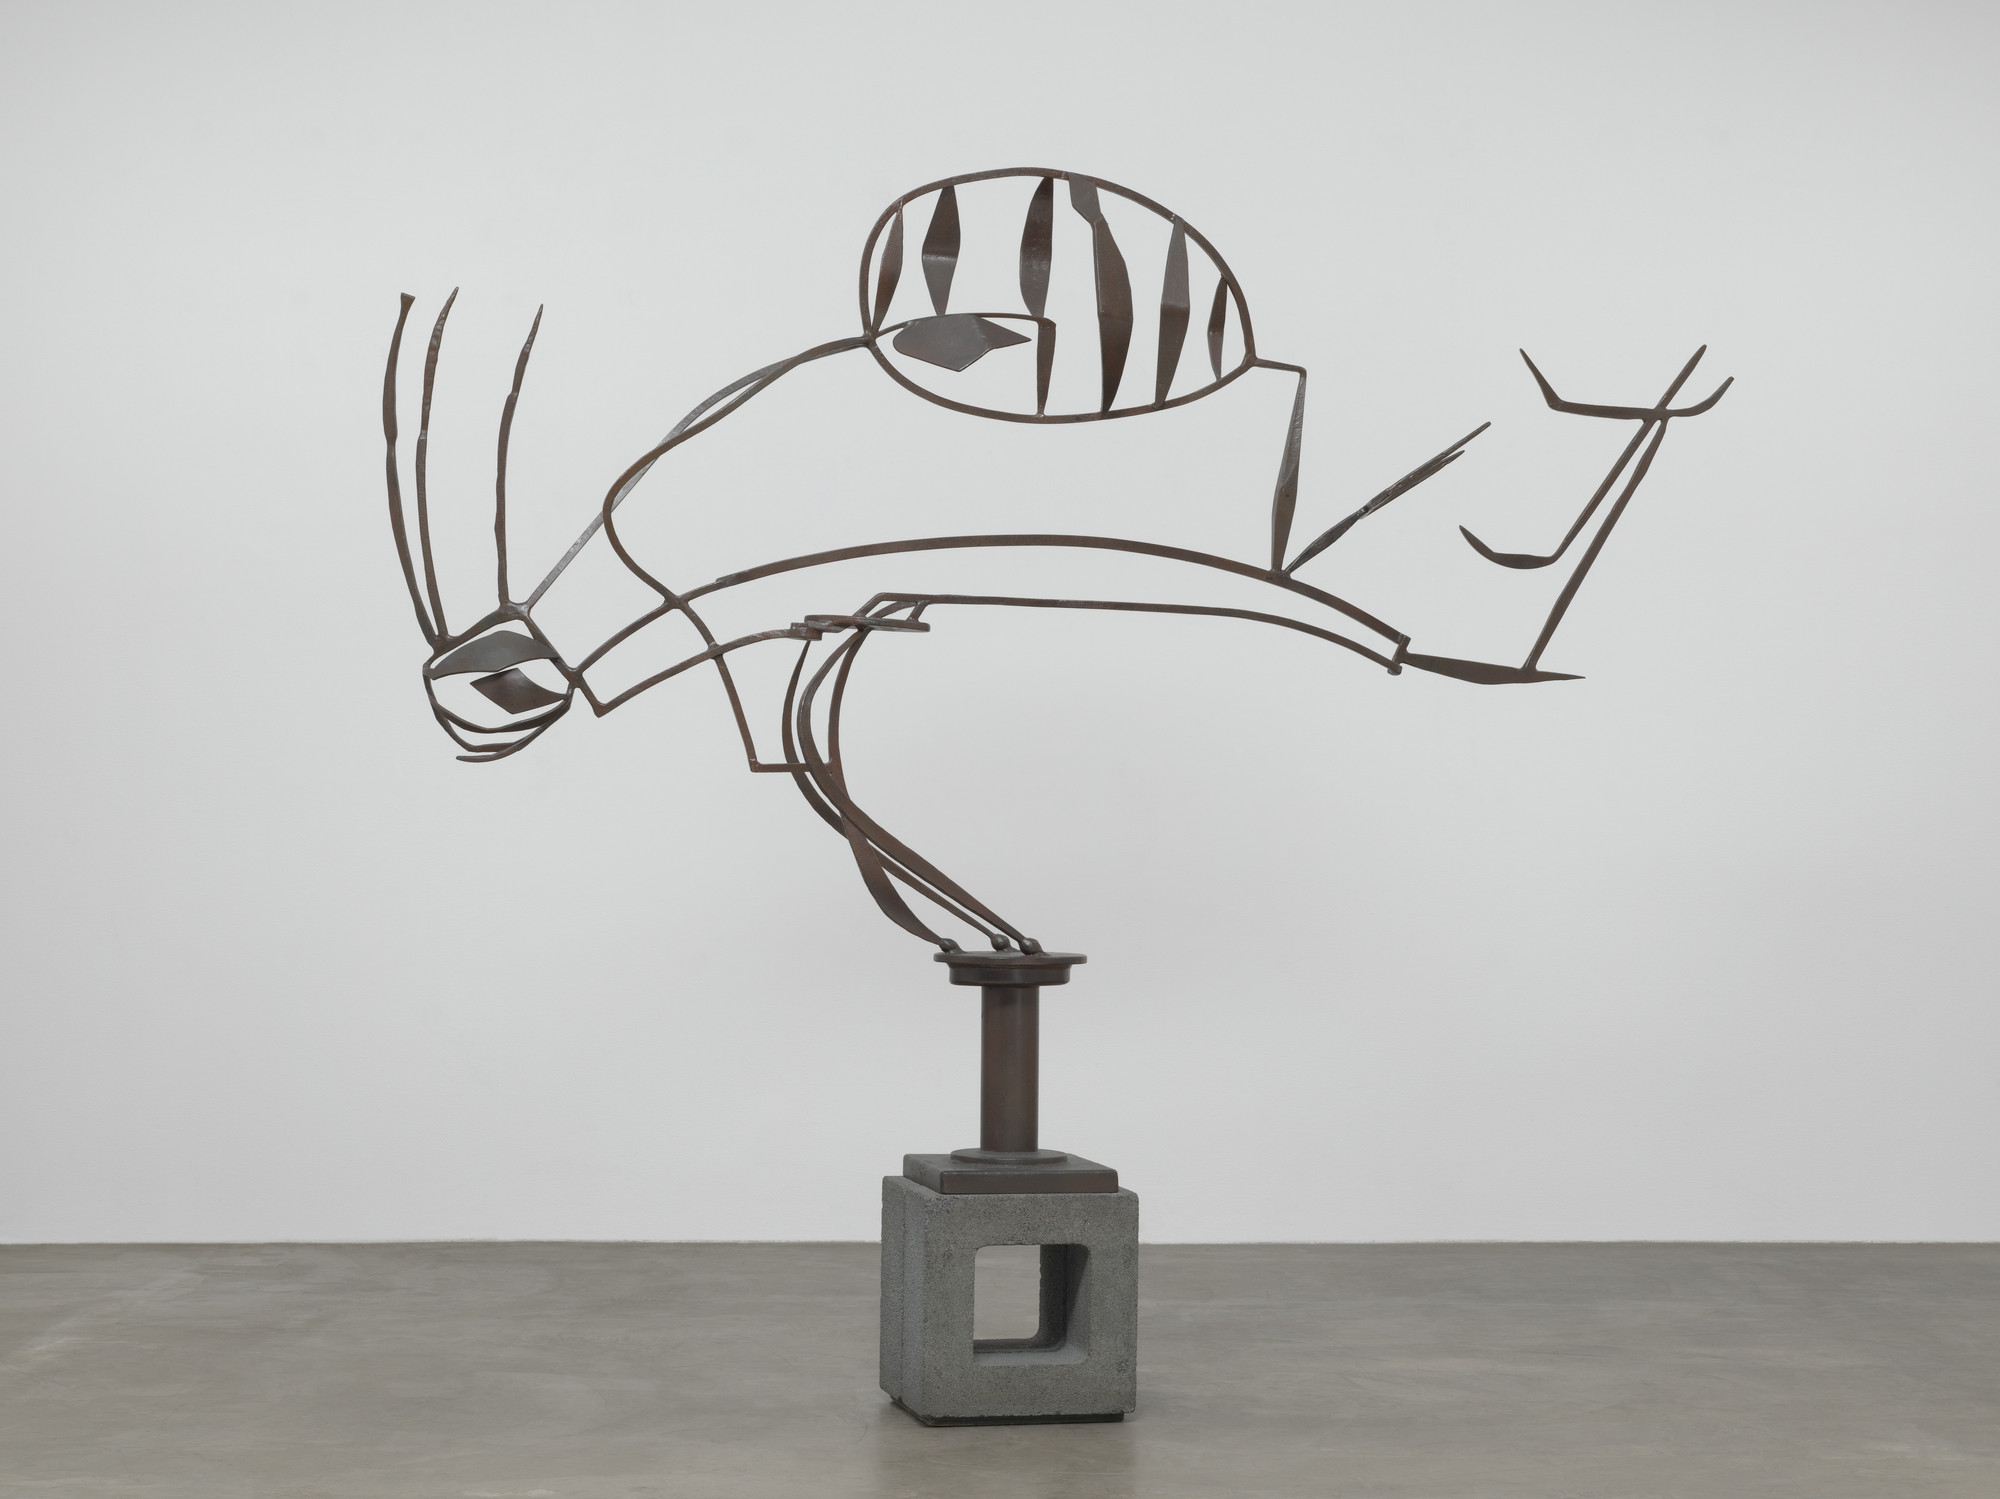 "David Smith. Australia. 1951. Painted steel on cinder block base, overall 6′ 7 1/2″ × 8′ 11 7/8″ × 16 1/8"" (202 × 274 × 41 cm); base 17 1/2 x 16 3/4 x 15 1/4"" (44.5 x 42.5 x 38.7 cm). The Museum of Modern Art. Gift of William Rubin"